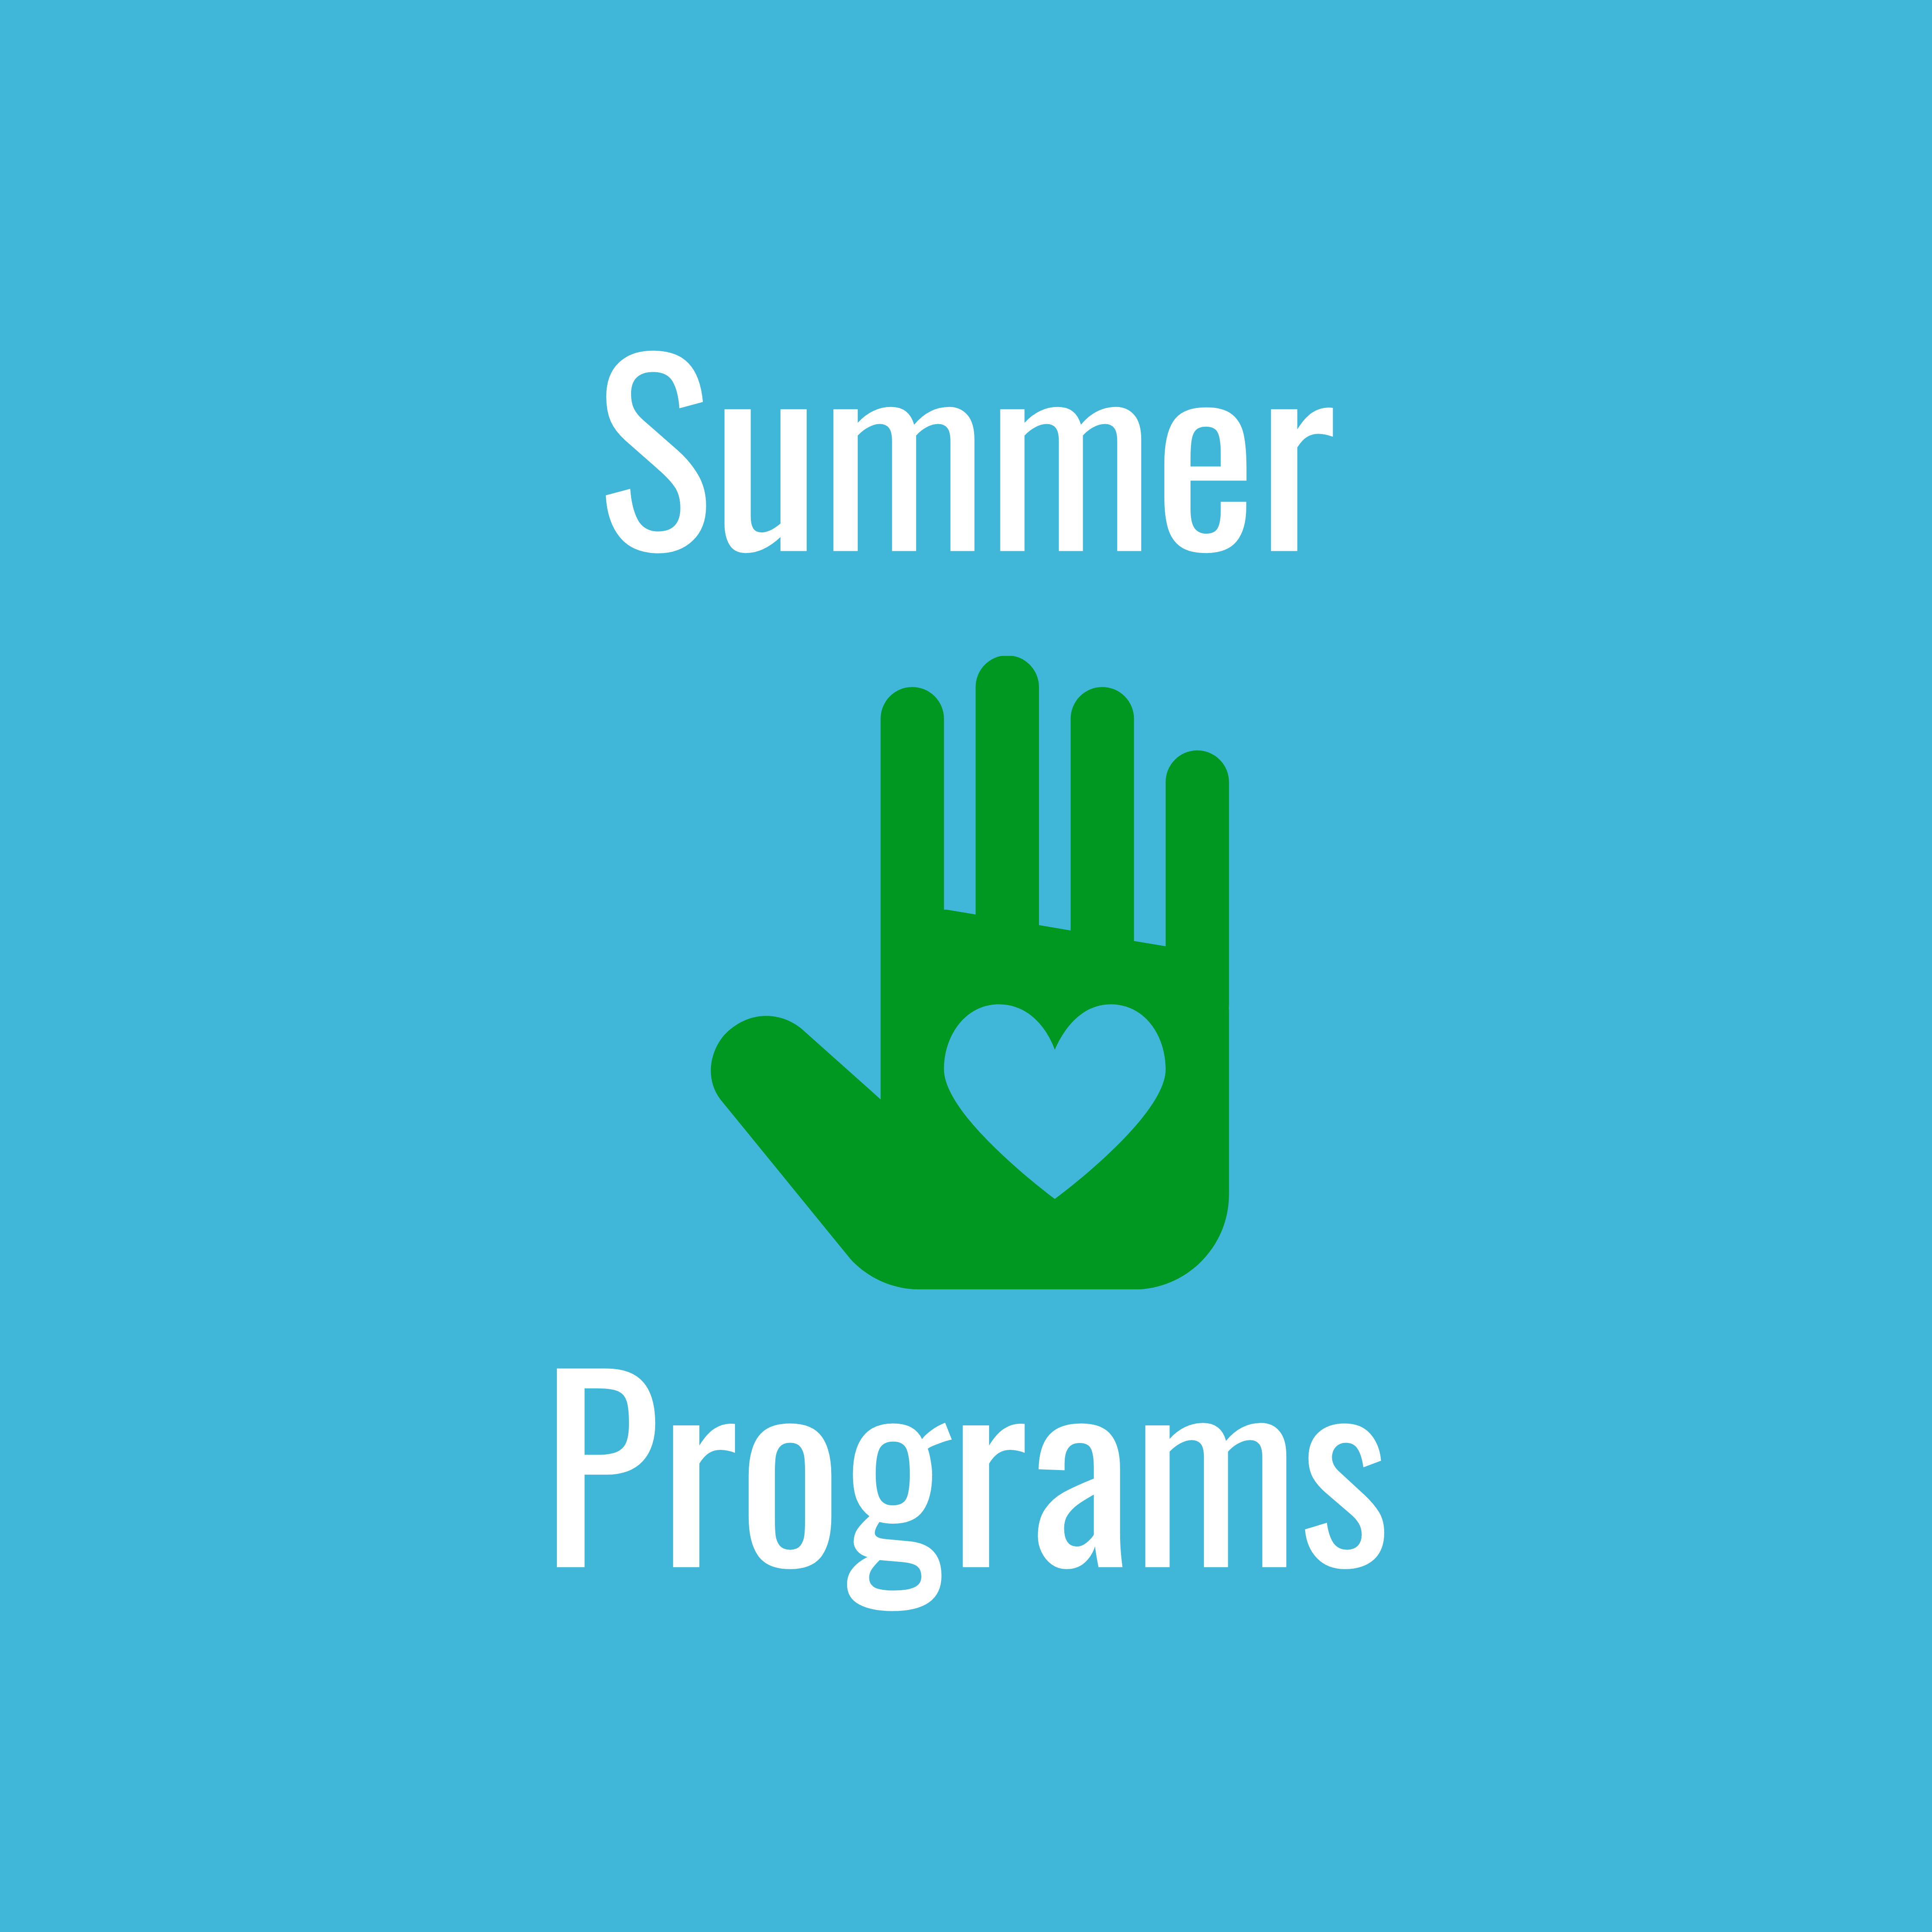 Pin By Dj Eductional Consulting On Summer Programs College Counselor College Counseling Summer Program